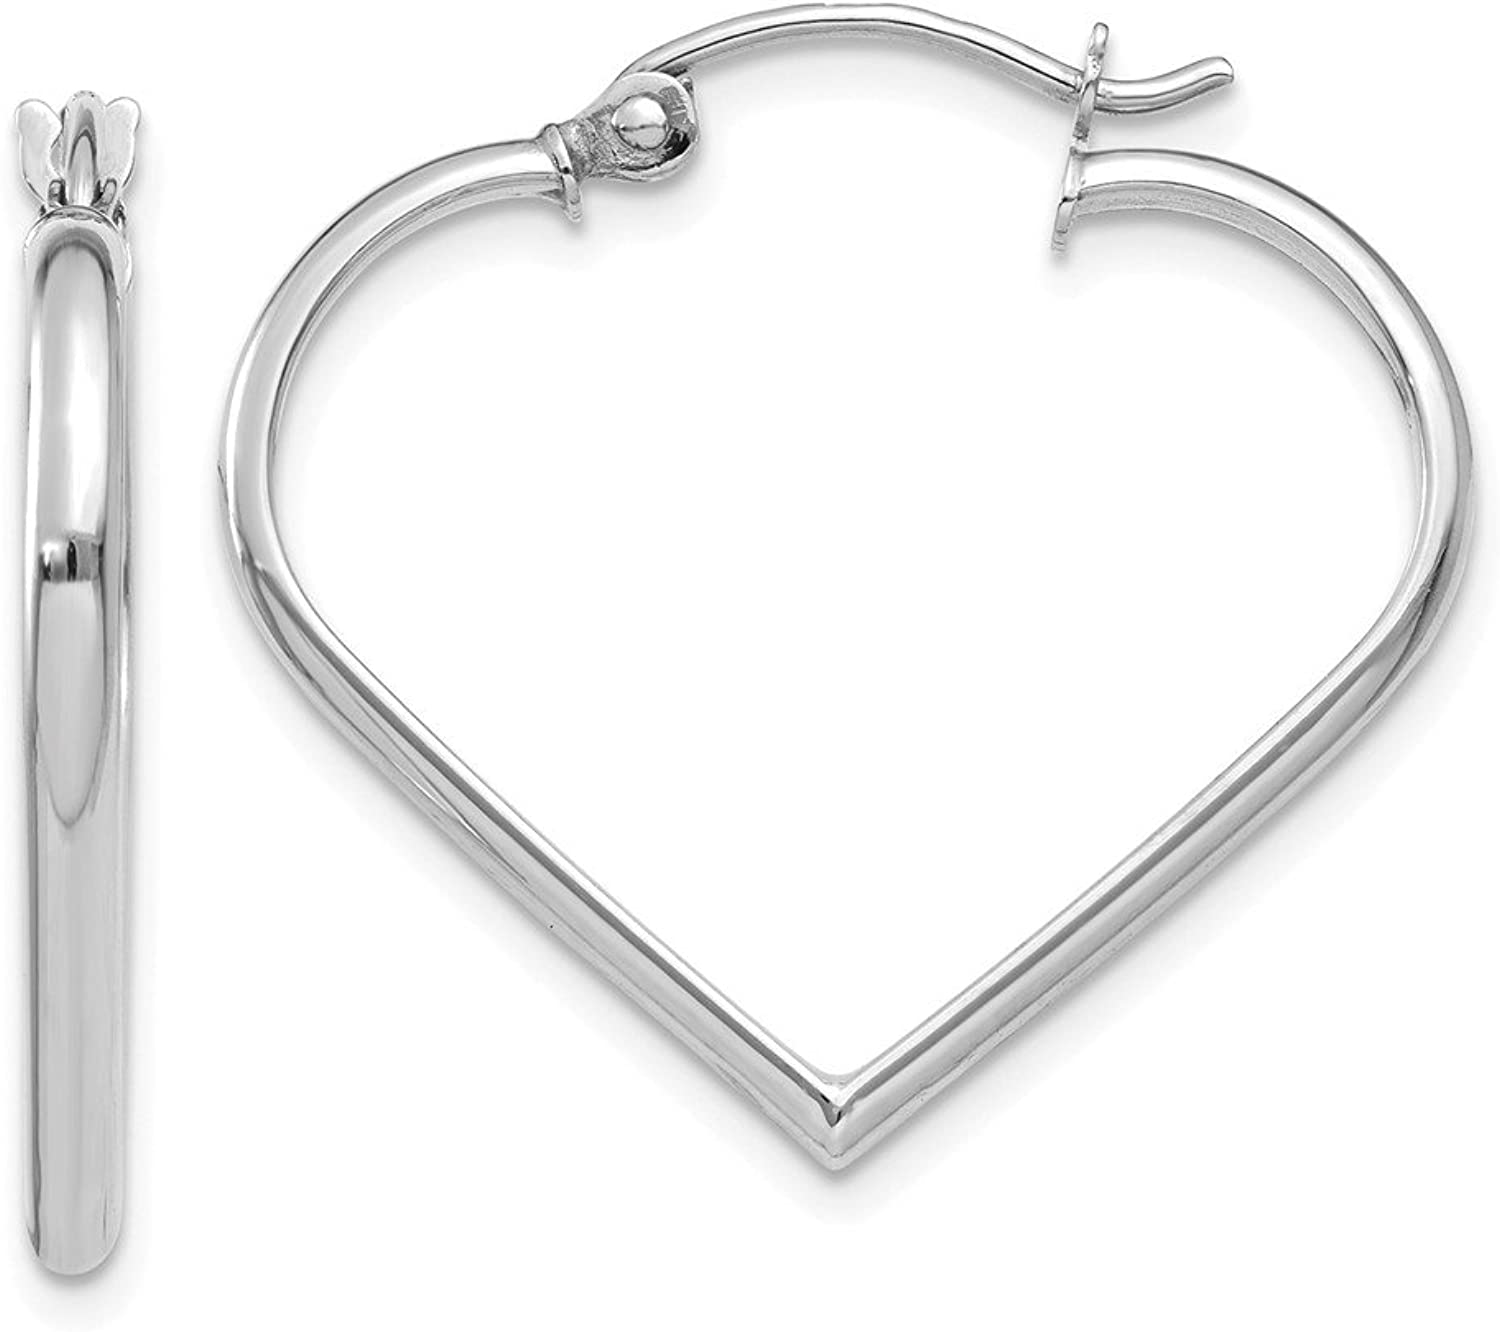 Beautiful White gold 14K 14k White gold 2mm Heart Hoop Earrings